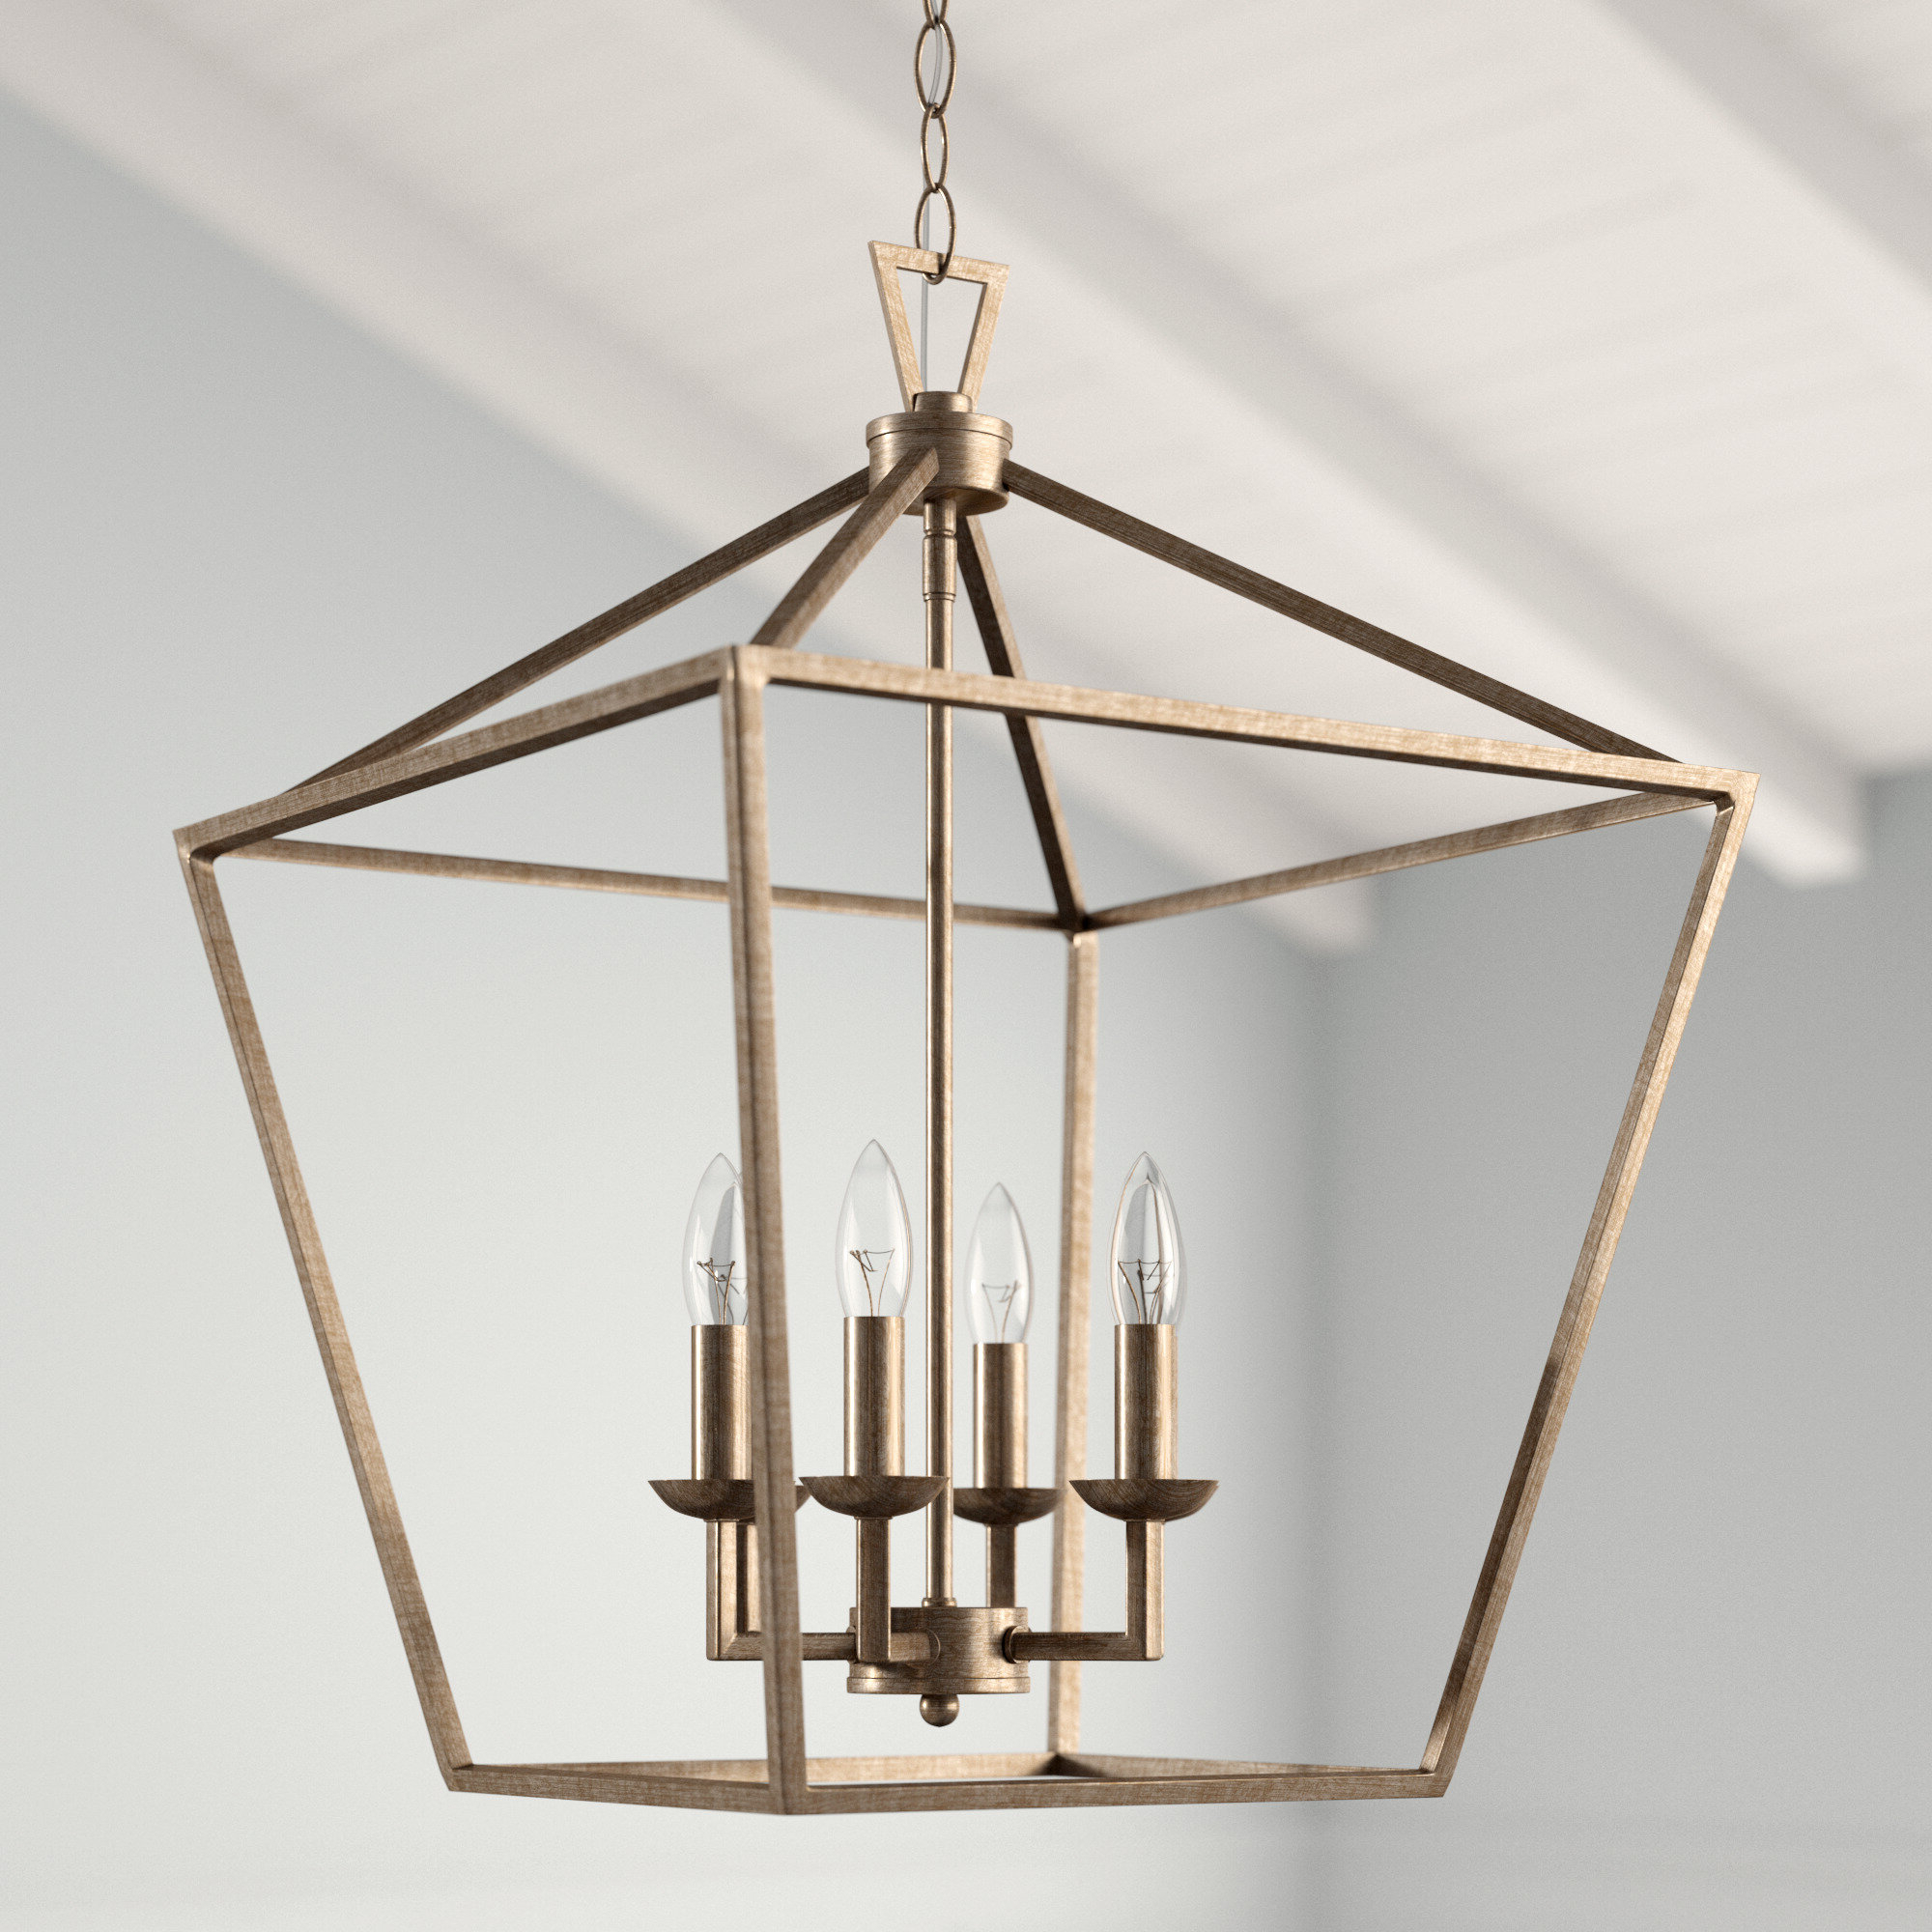 Louanne 3 Light Lantern Geometric Pendants Intended For Popular Carmen 6 Light Lantern Geometric Pendant (View 5 of 25)